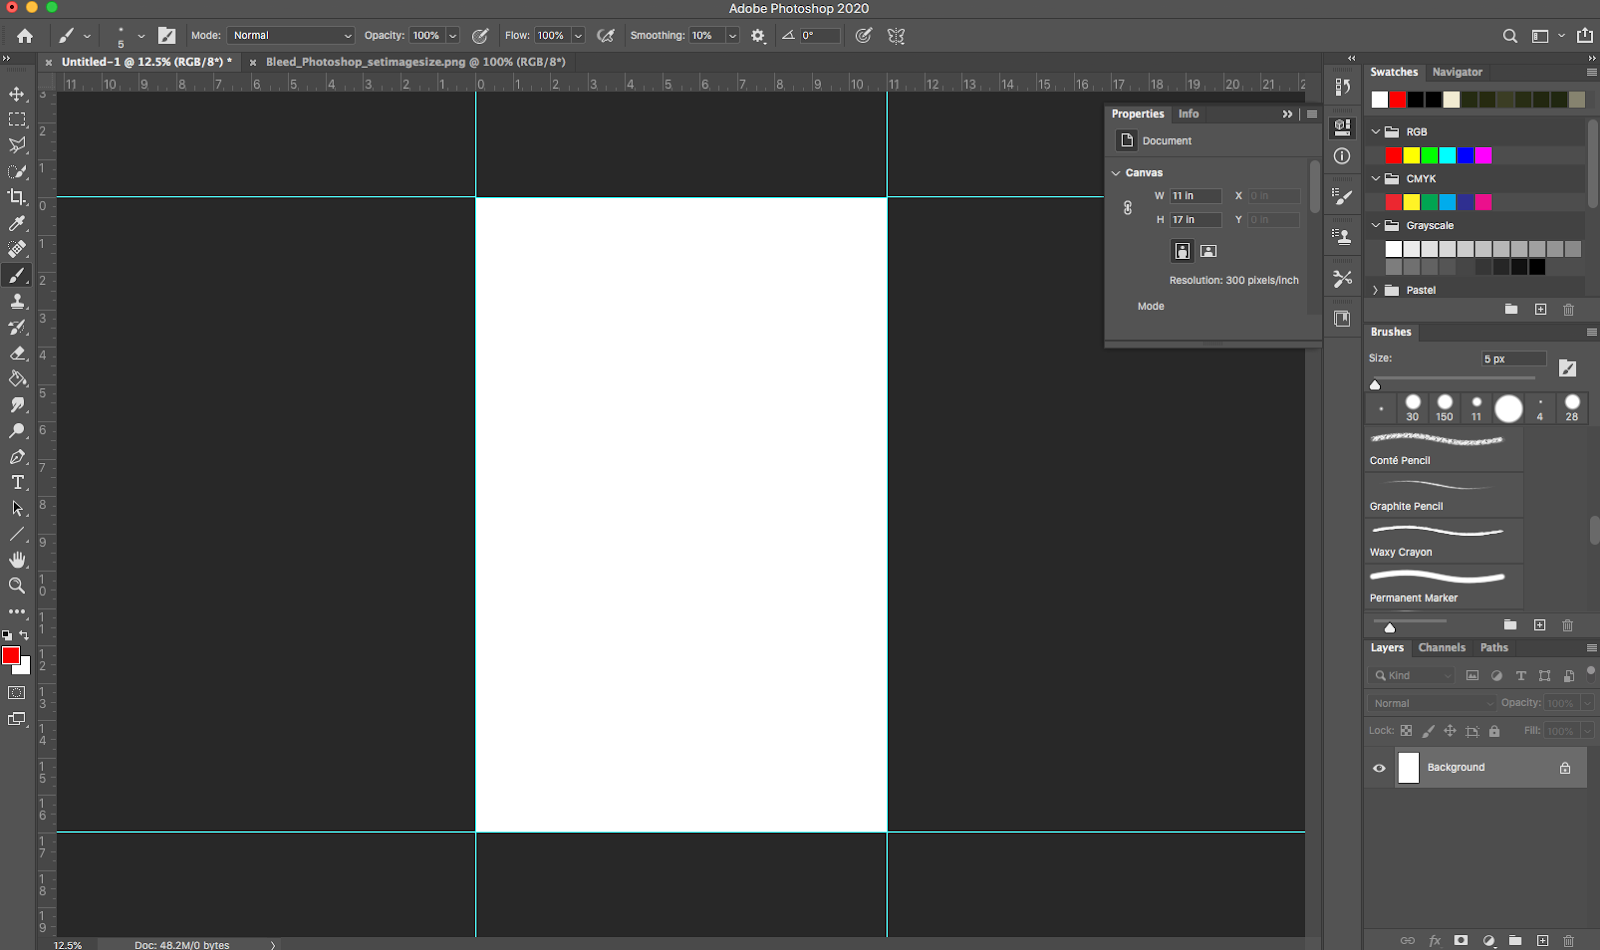 Image showing properly set trim guides in Adobe Photoshop.